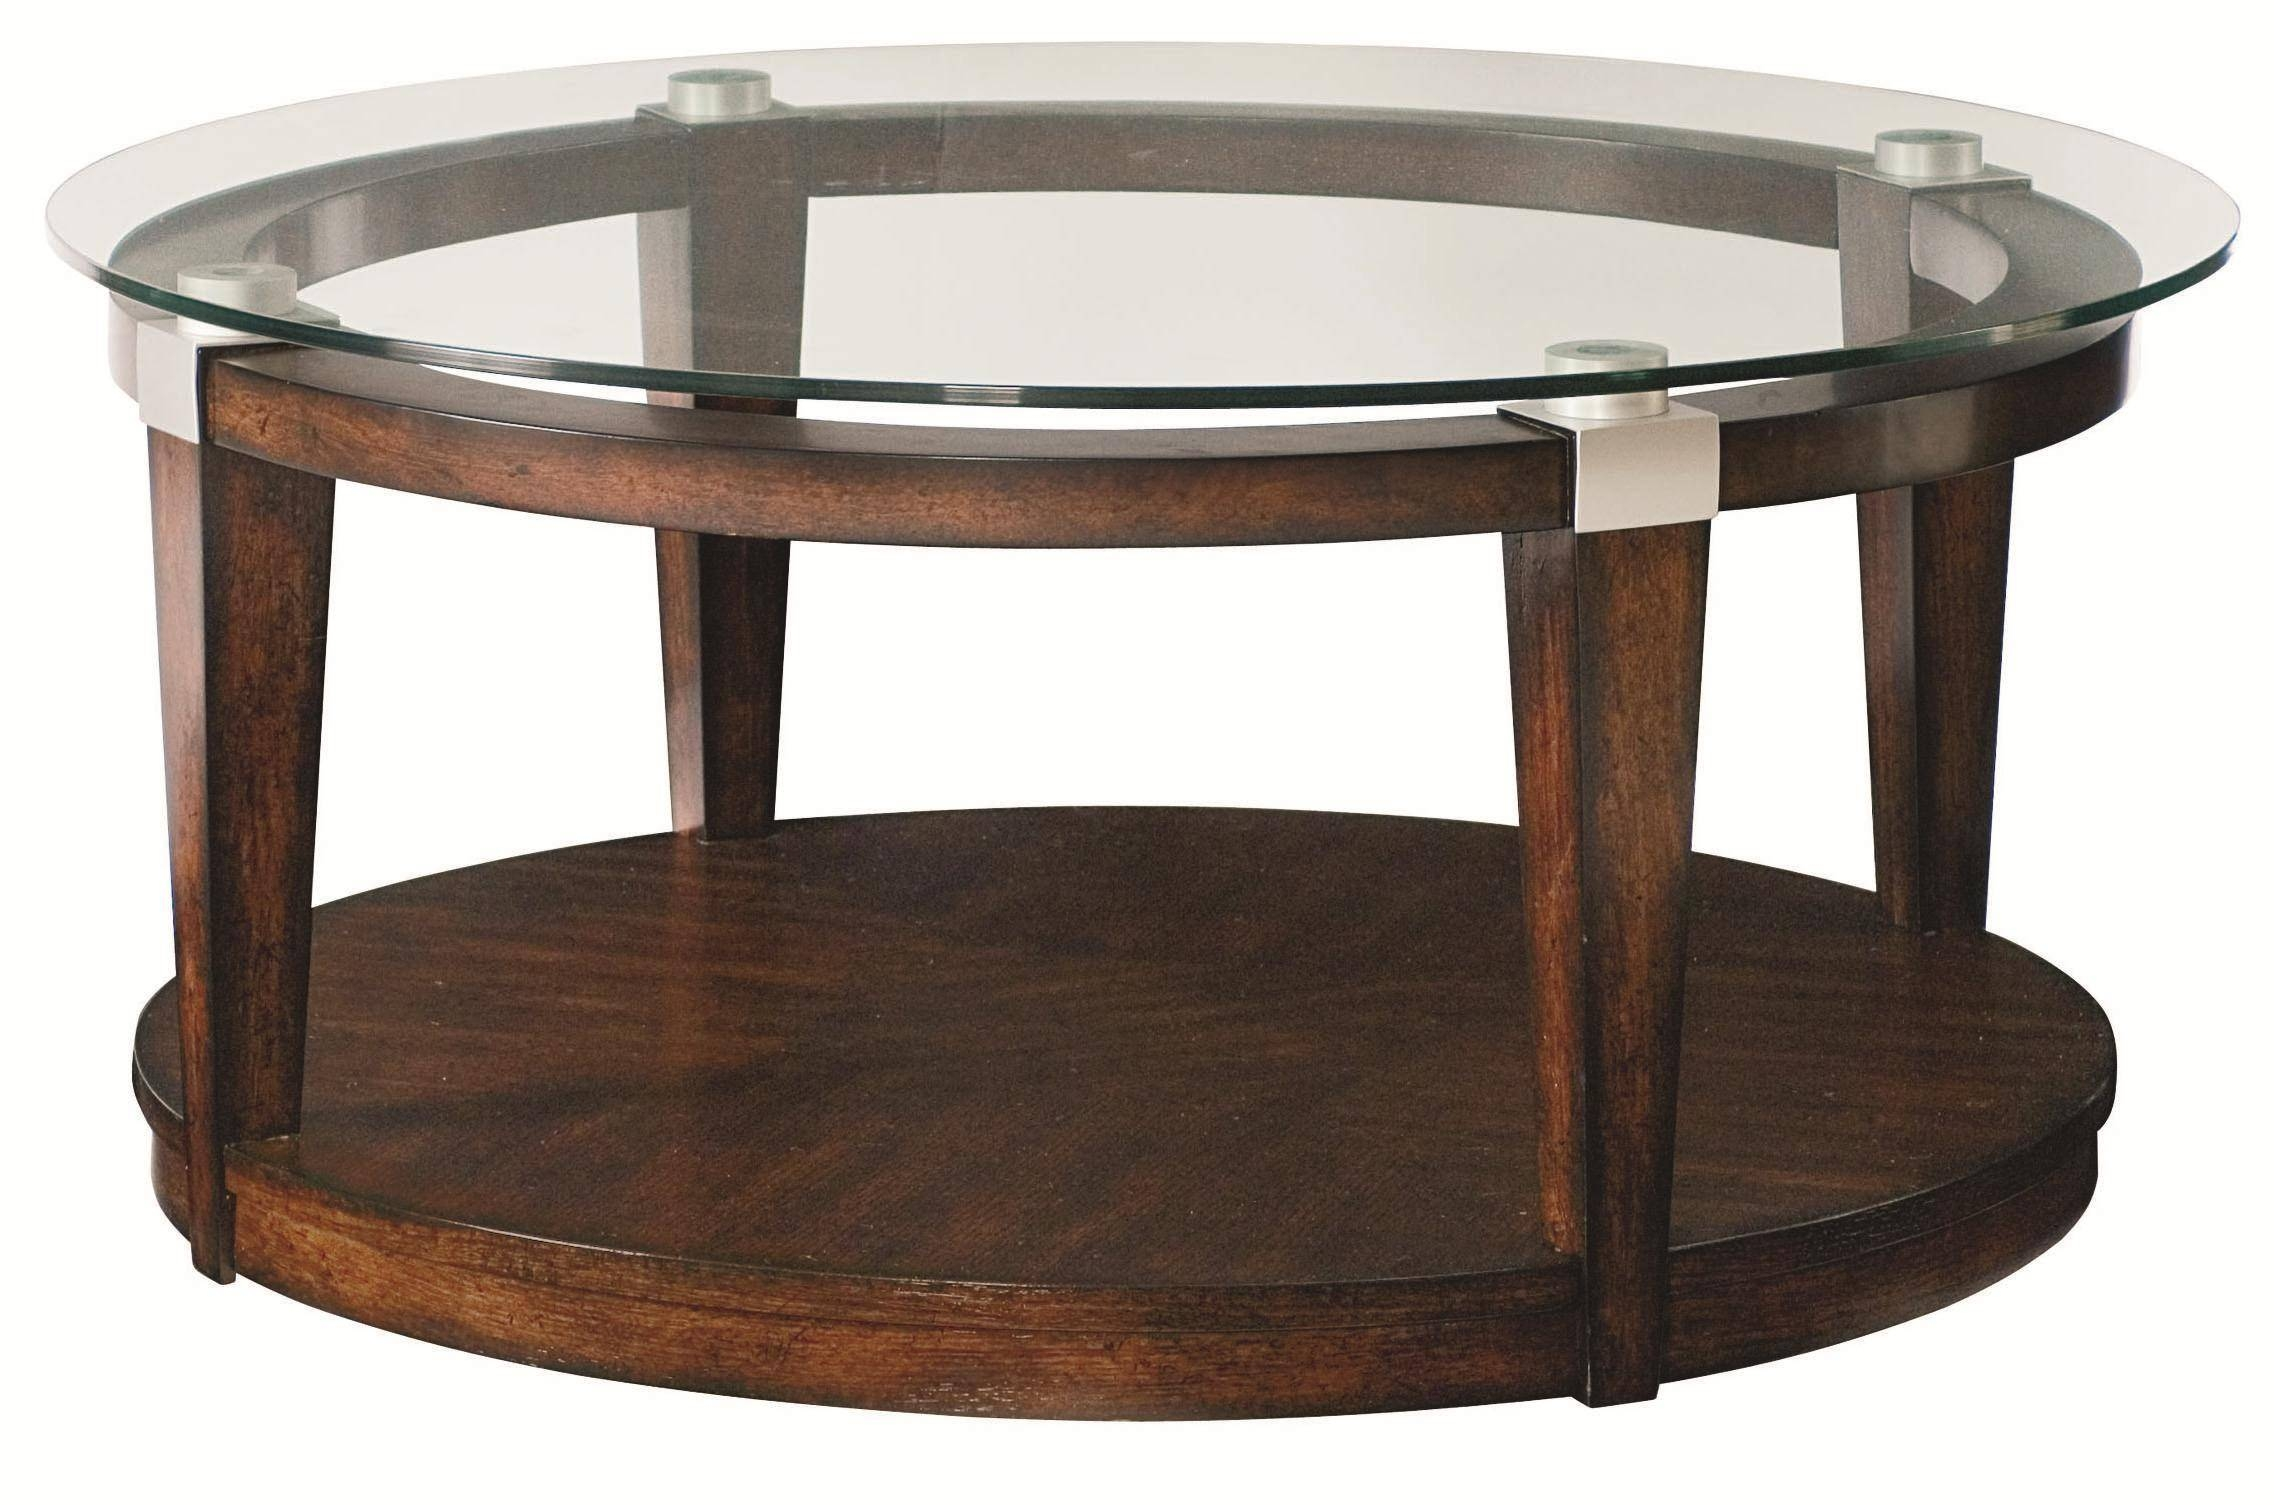 Round Coffee Table With Glass And Wood | Coffee Tables Decoration for Circular Glass Coffee Tables (Image 19 of 30)